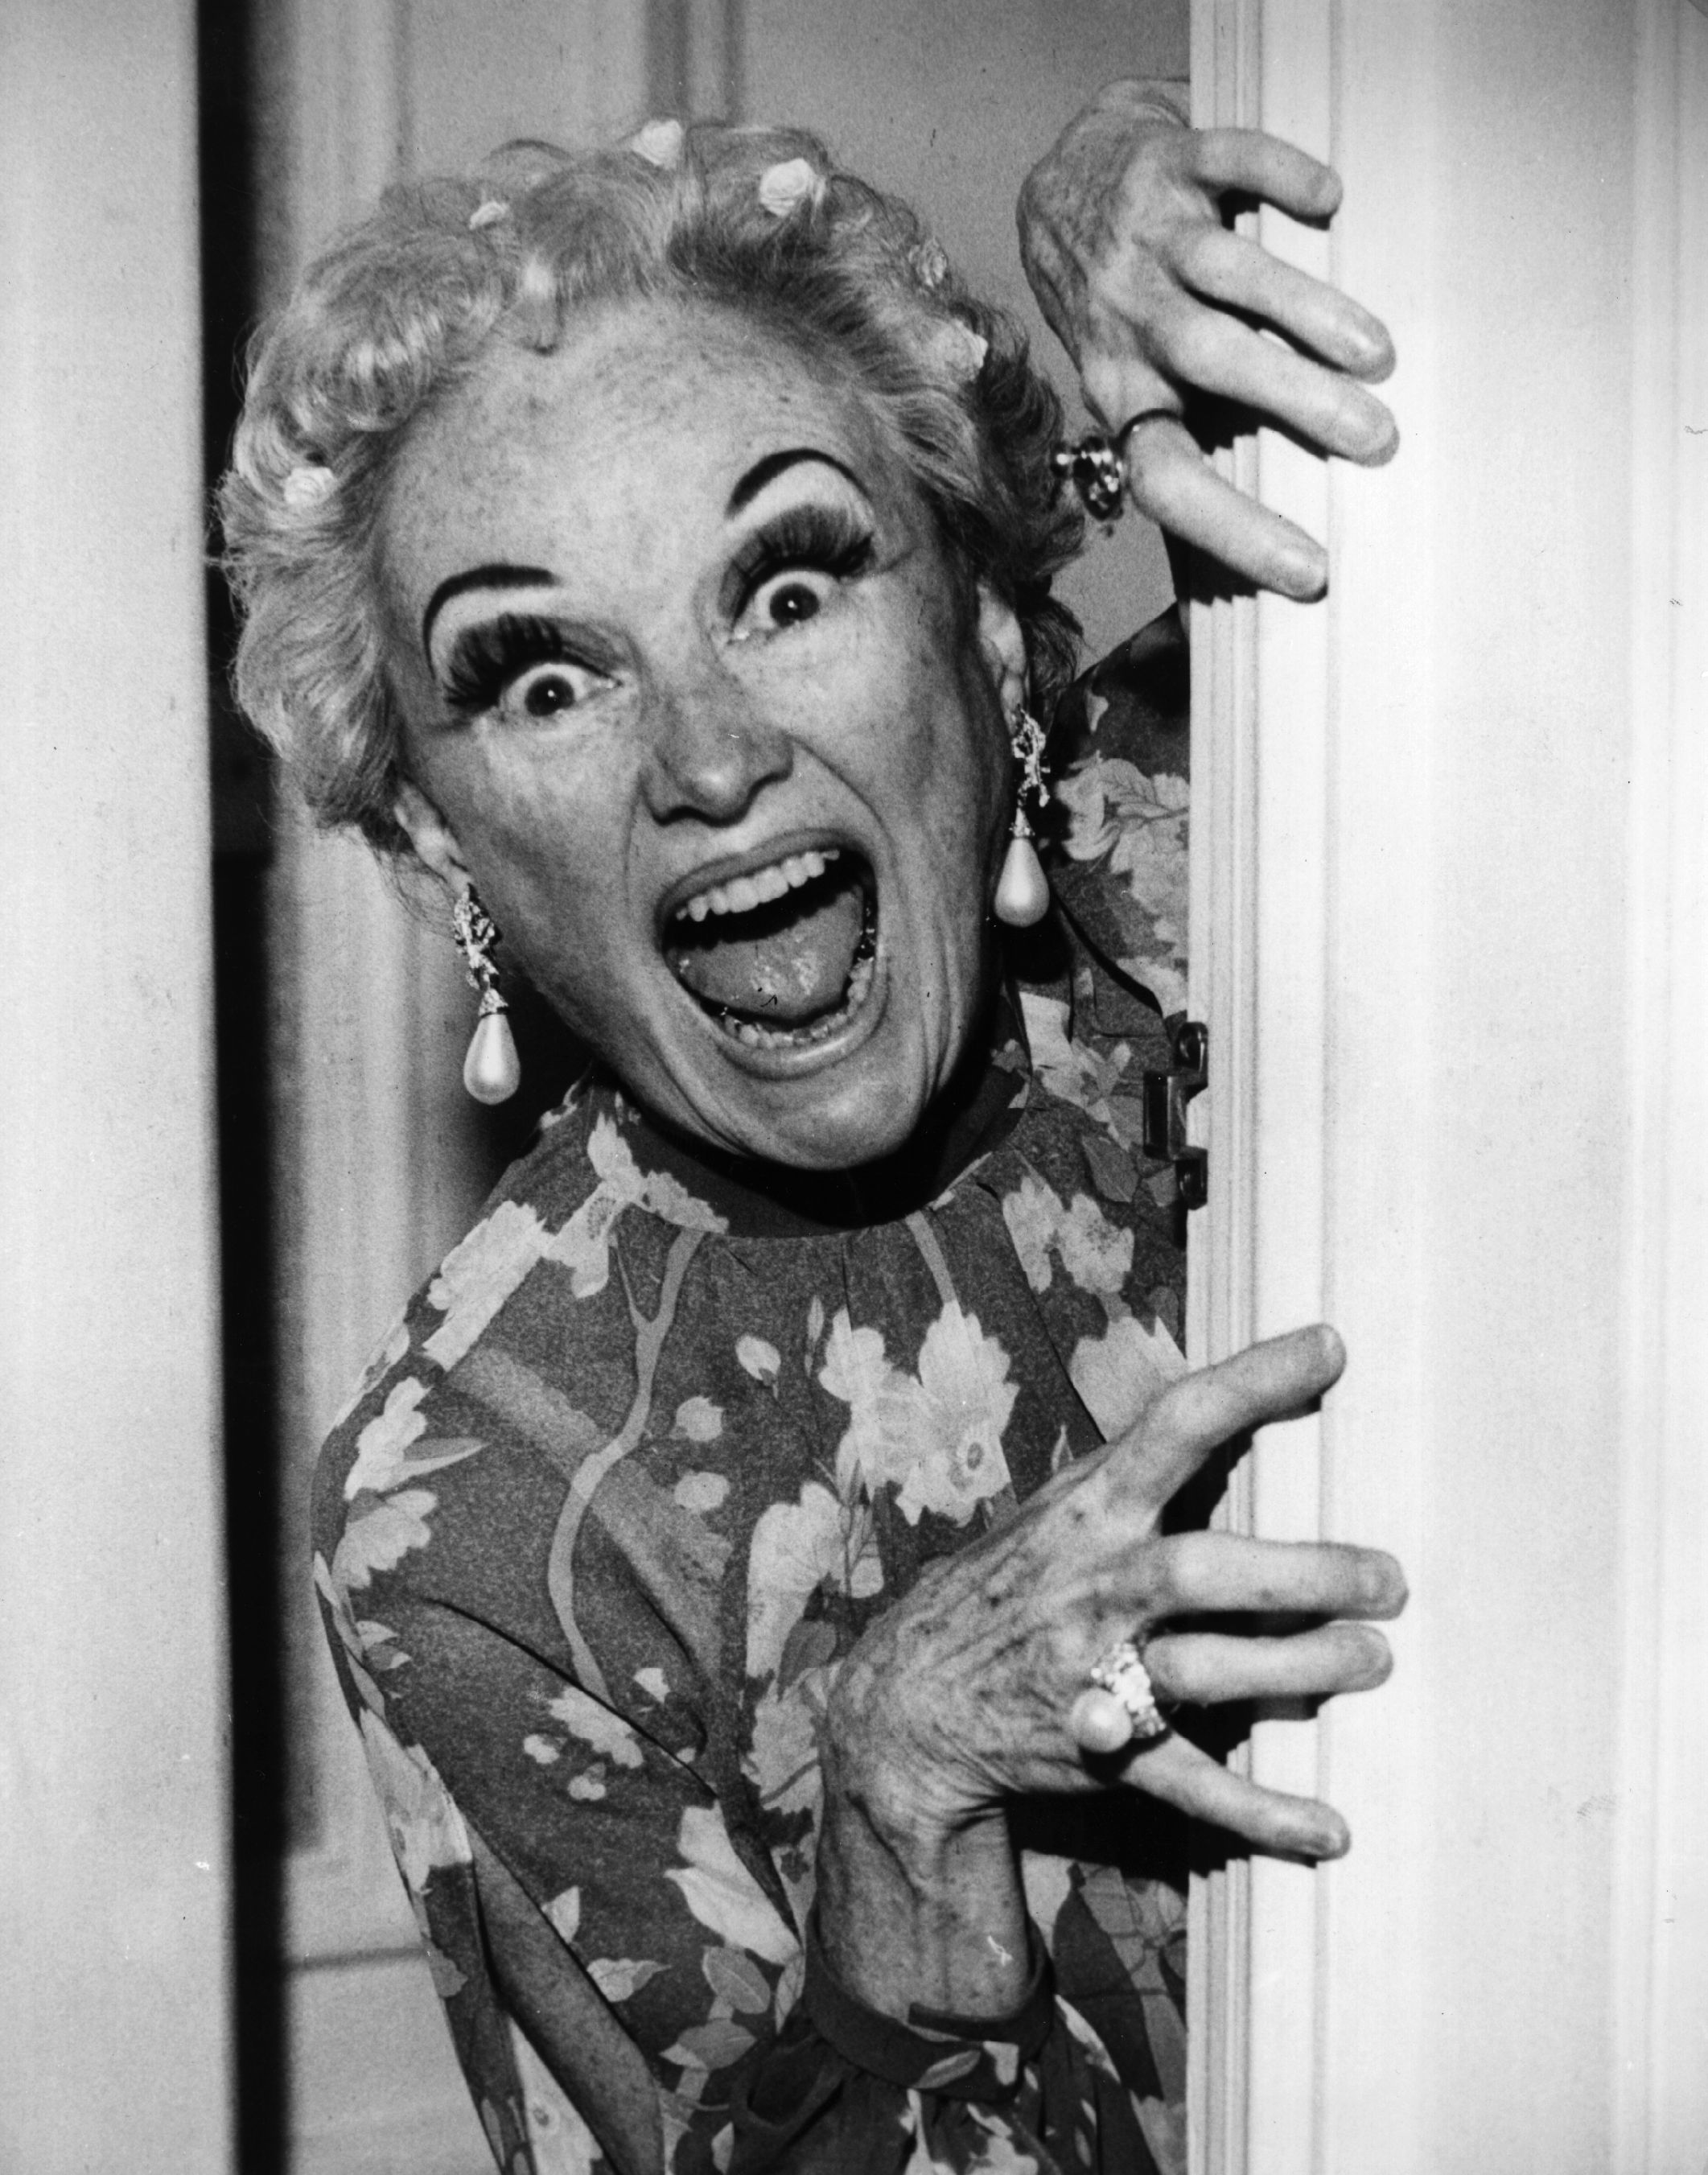 Hollywood comedienne Phyllis Diller playing peek-a-boo with the cameraman before the start of her television show 'Bonkers'.